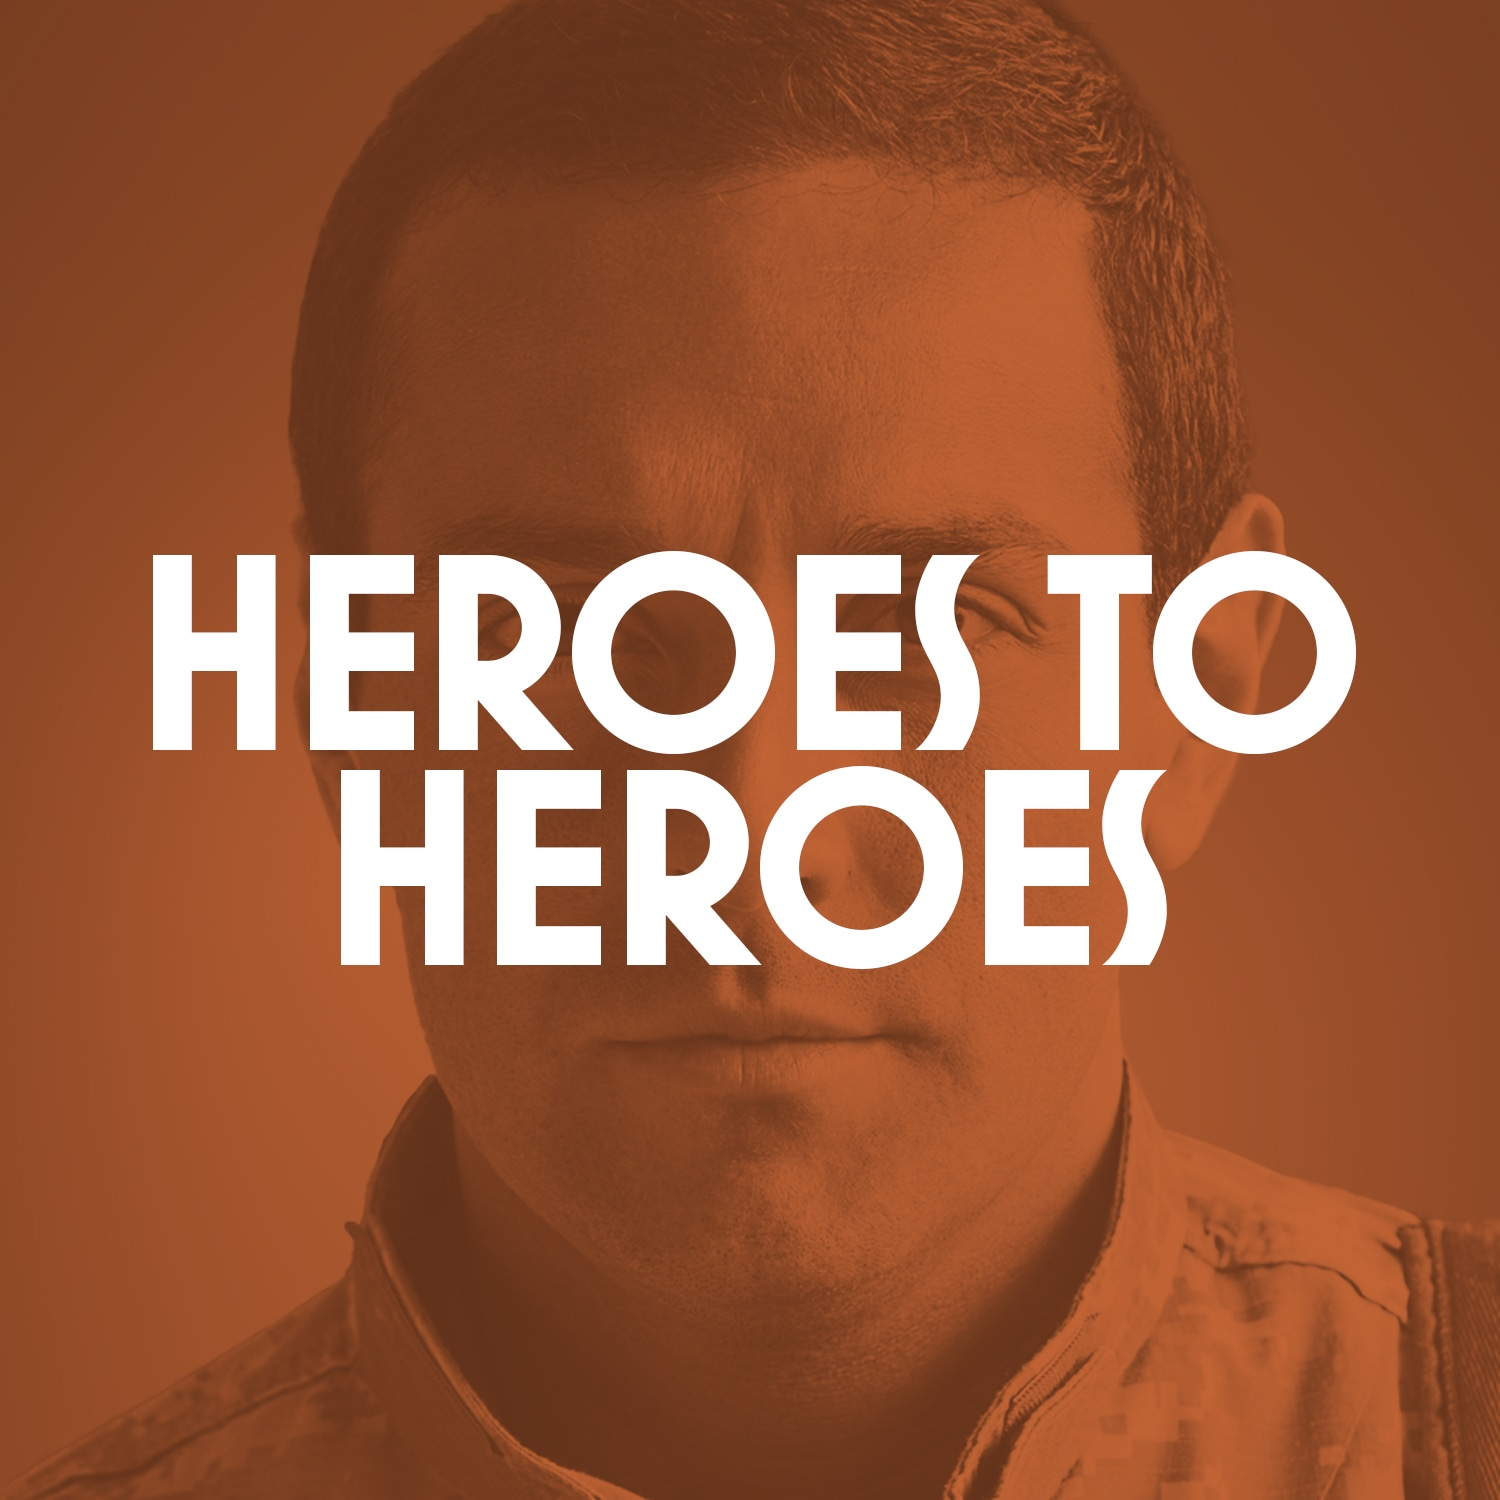 Heroes to Heroes Responsive Website Redesign